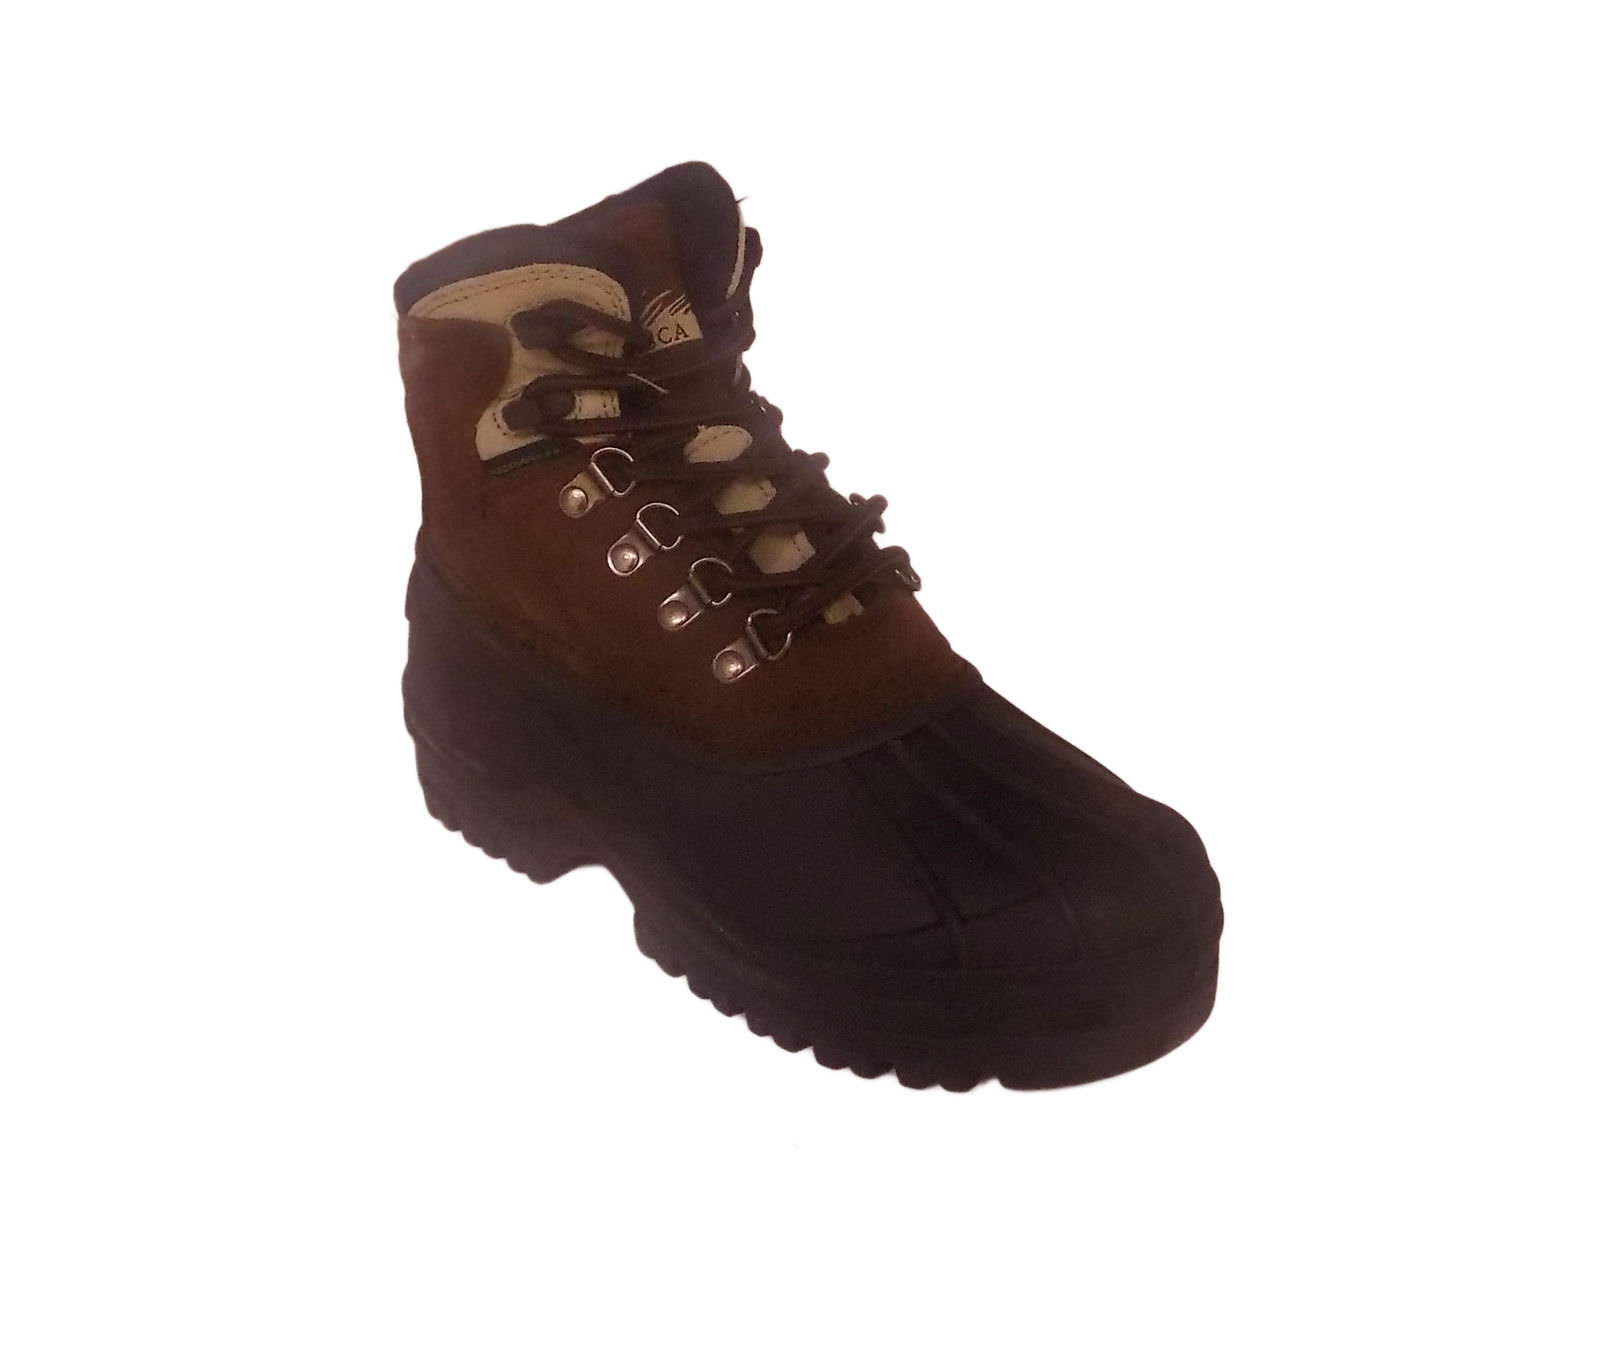 Itasca GRANDE Womens Brown Thermolite Insulated Winter Boots by